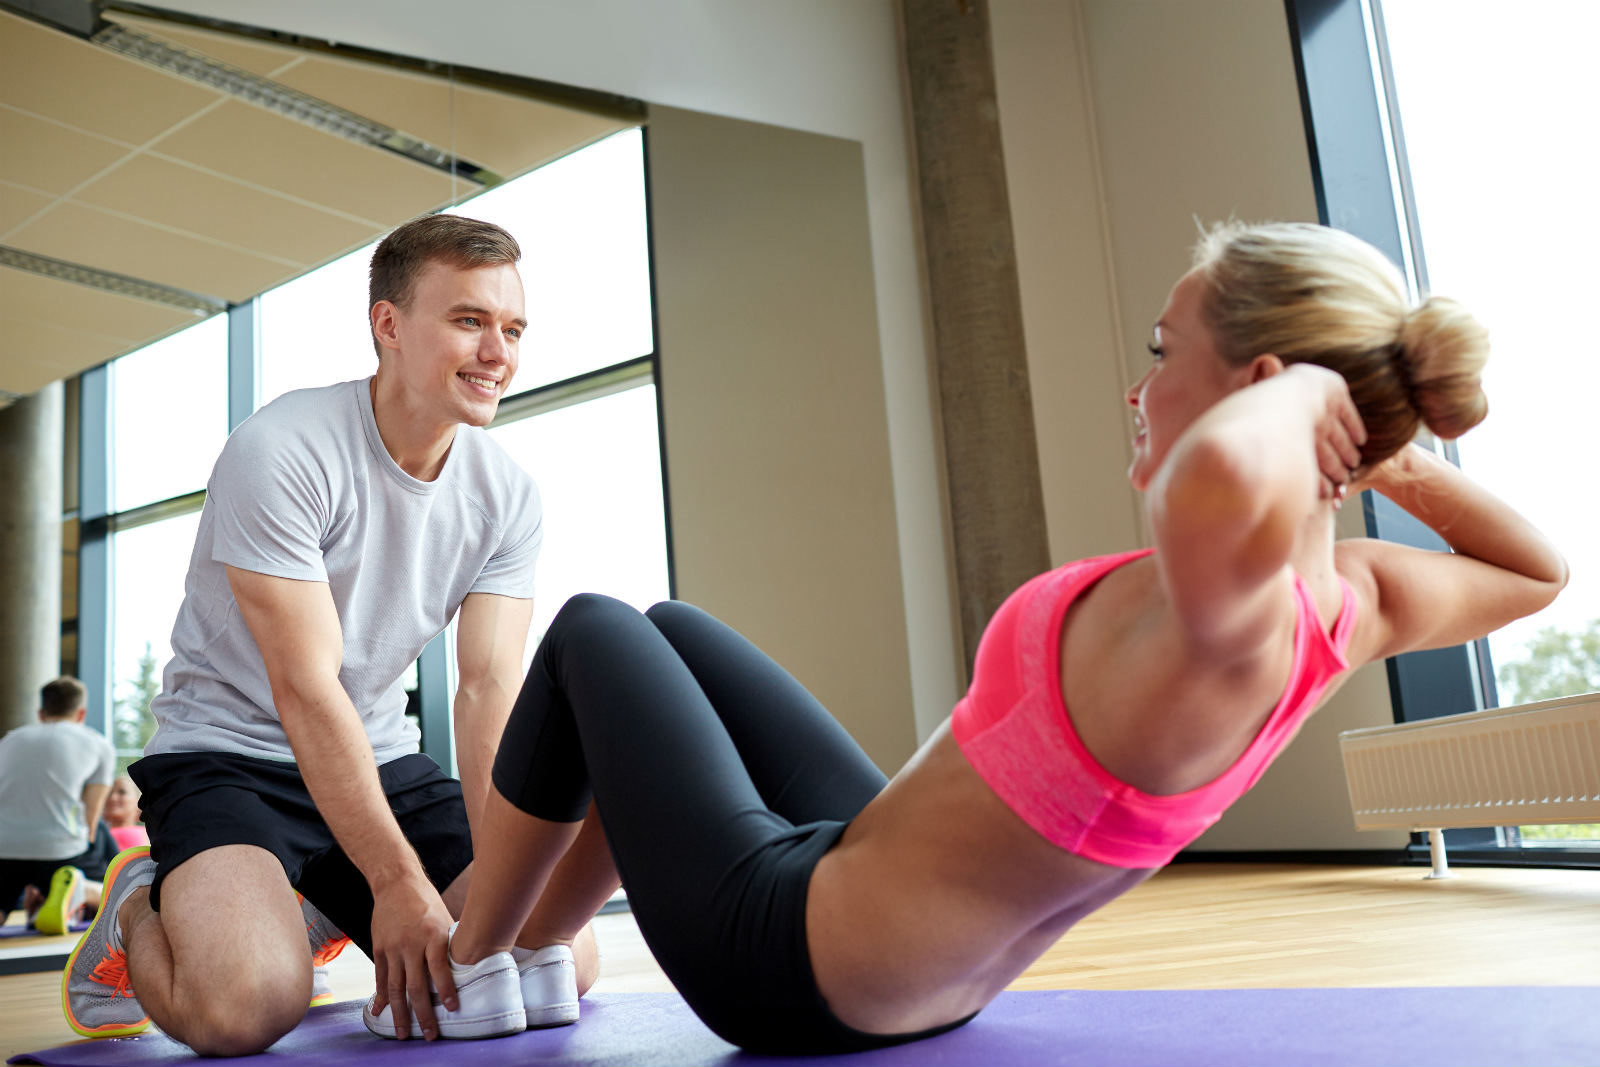 Know the average group fitness instructor salary